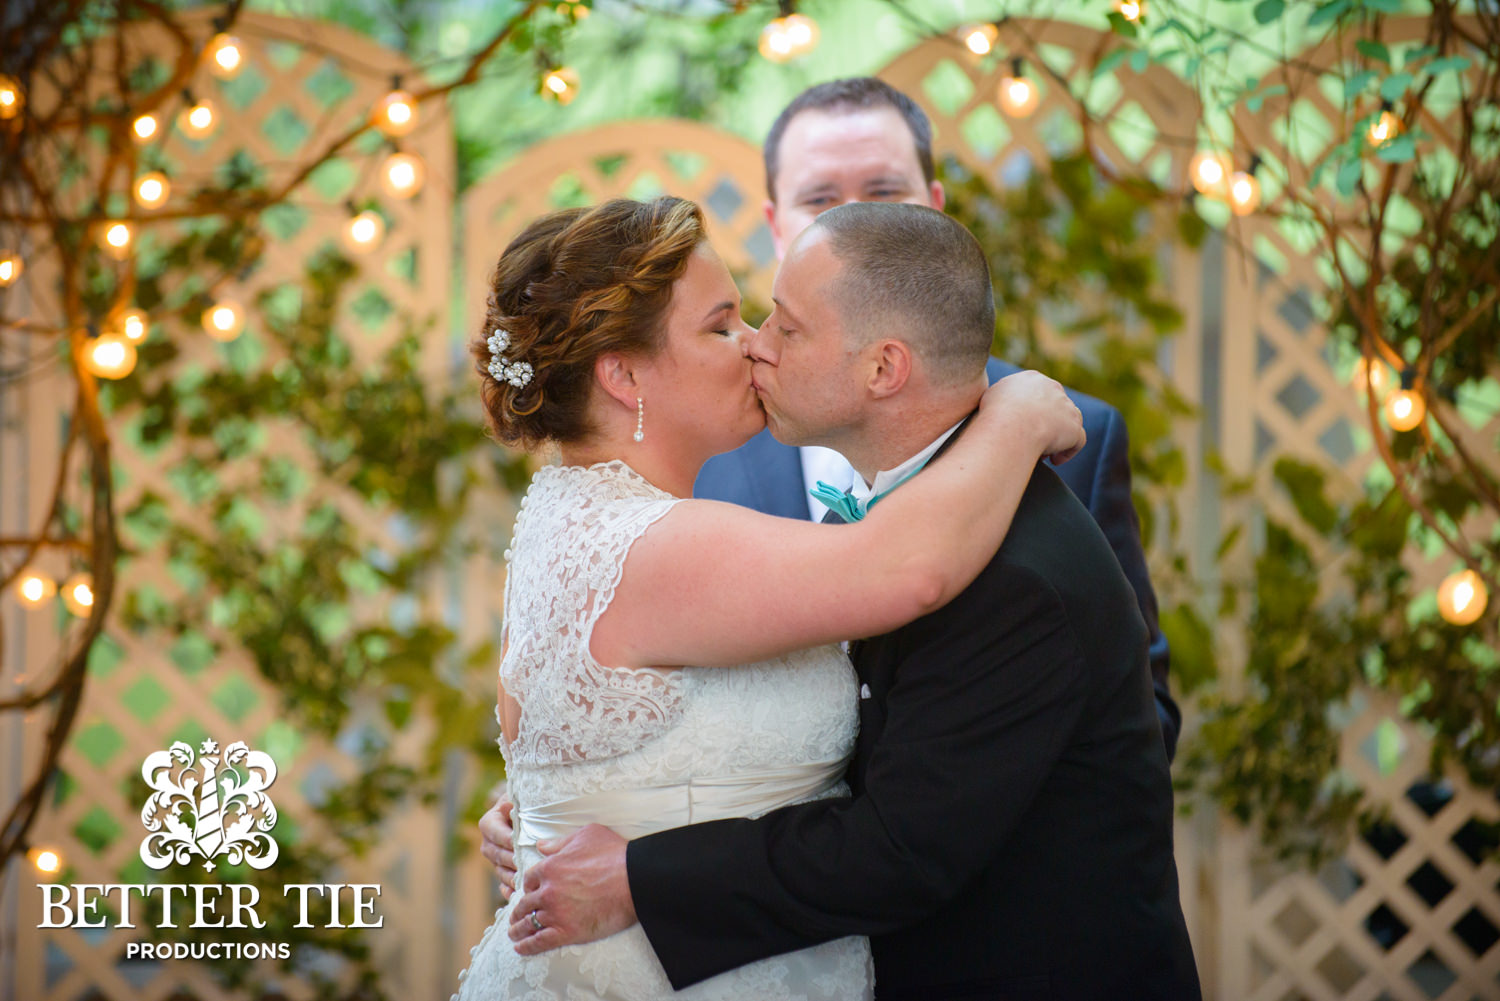 Tori + Barry | Twigs Tempietto Wedding | Better Tie Productions-203.jpg